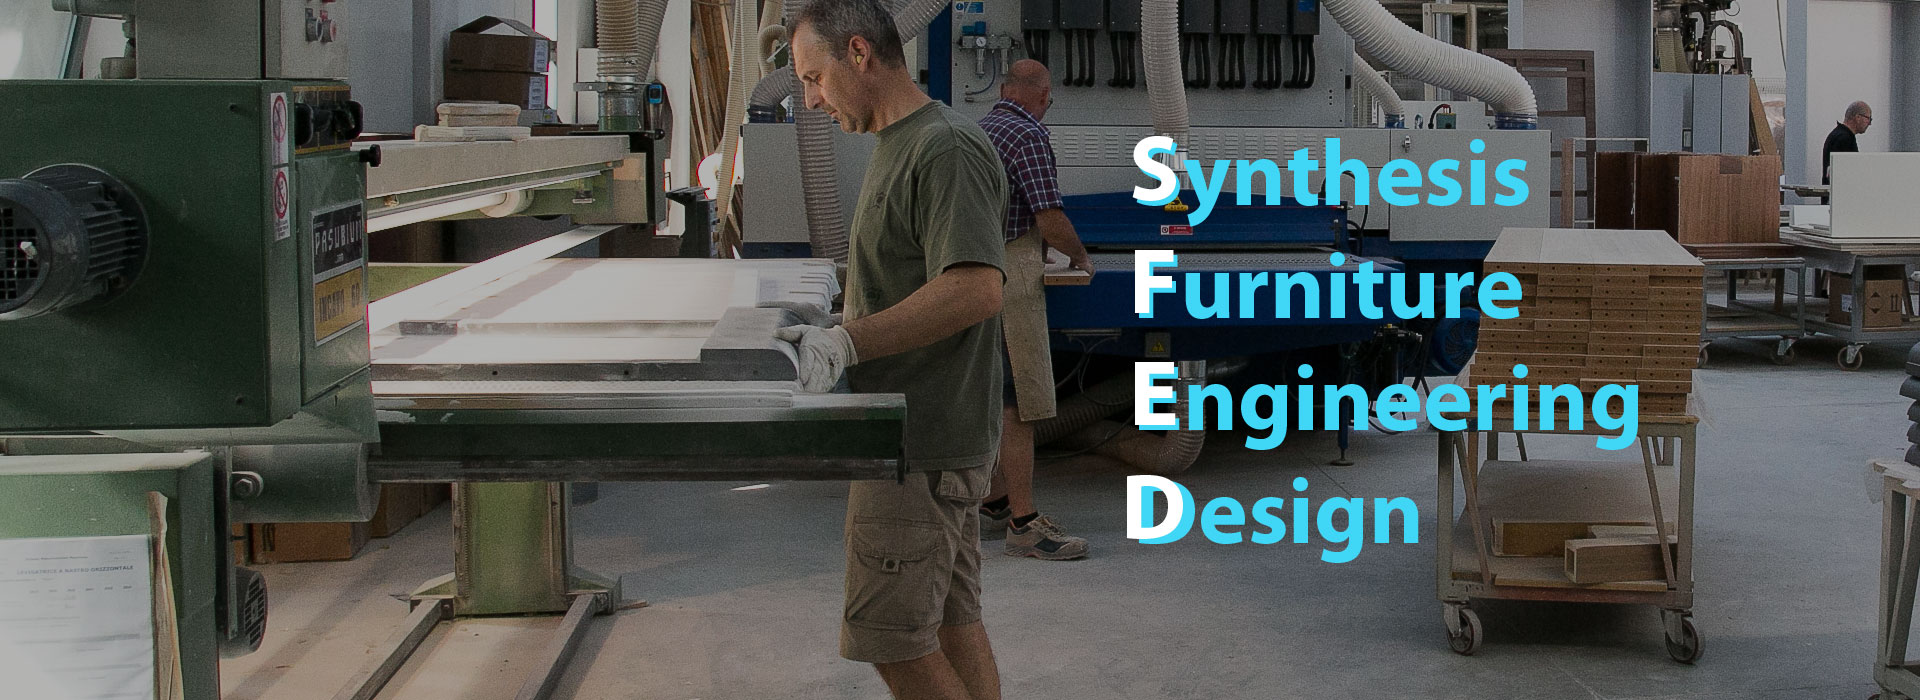 synthesis furniture engineering design